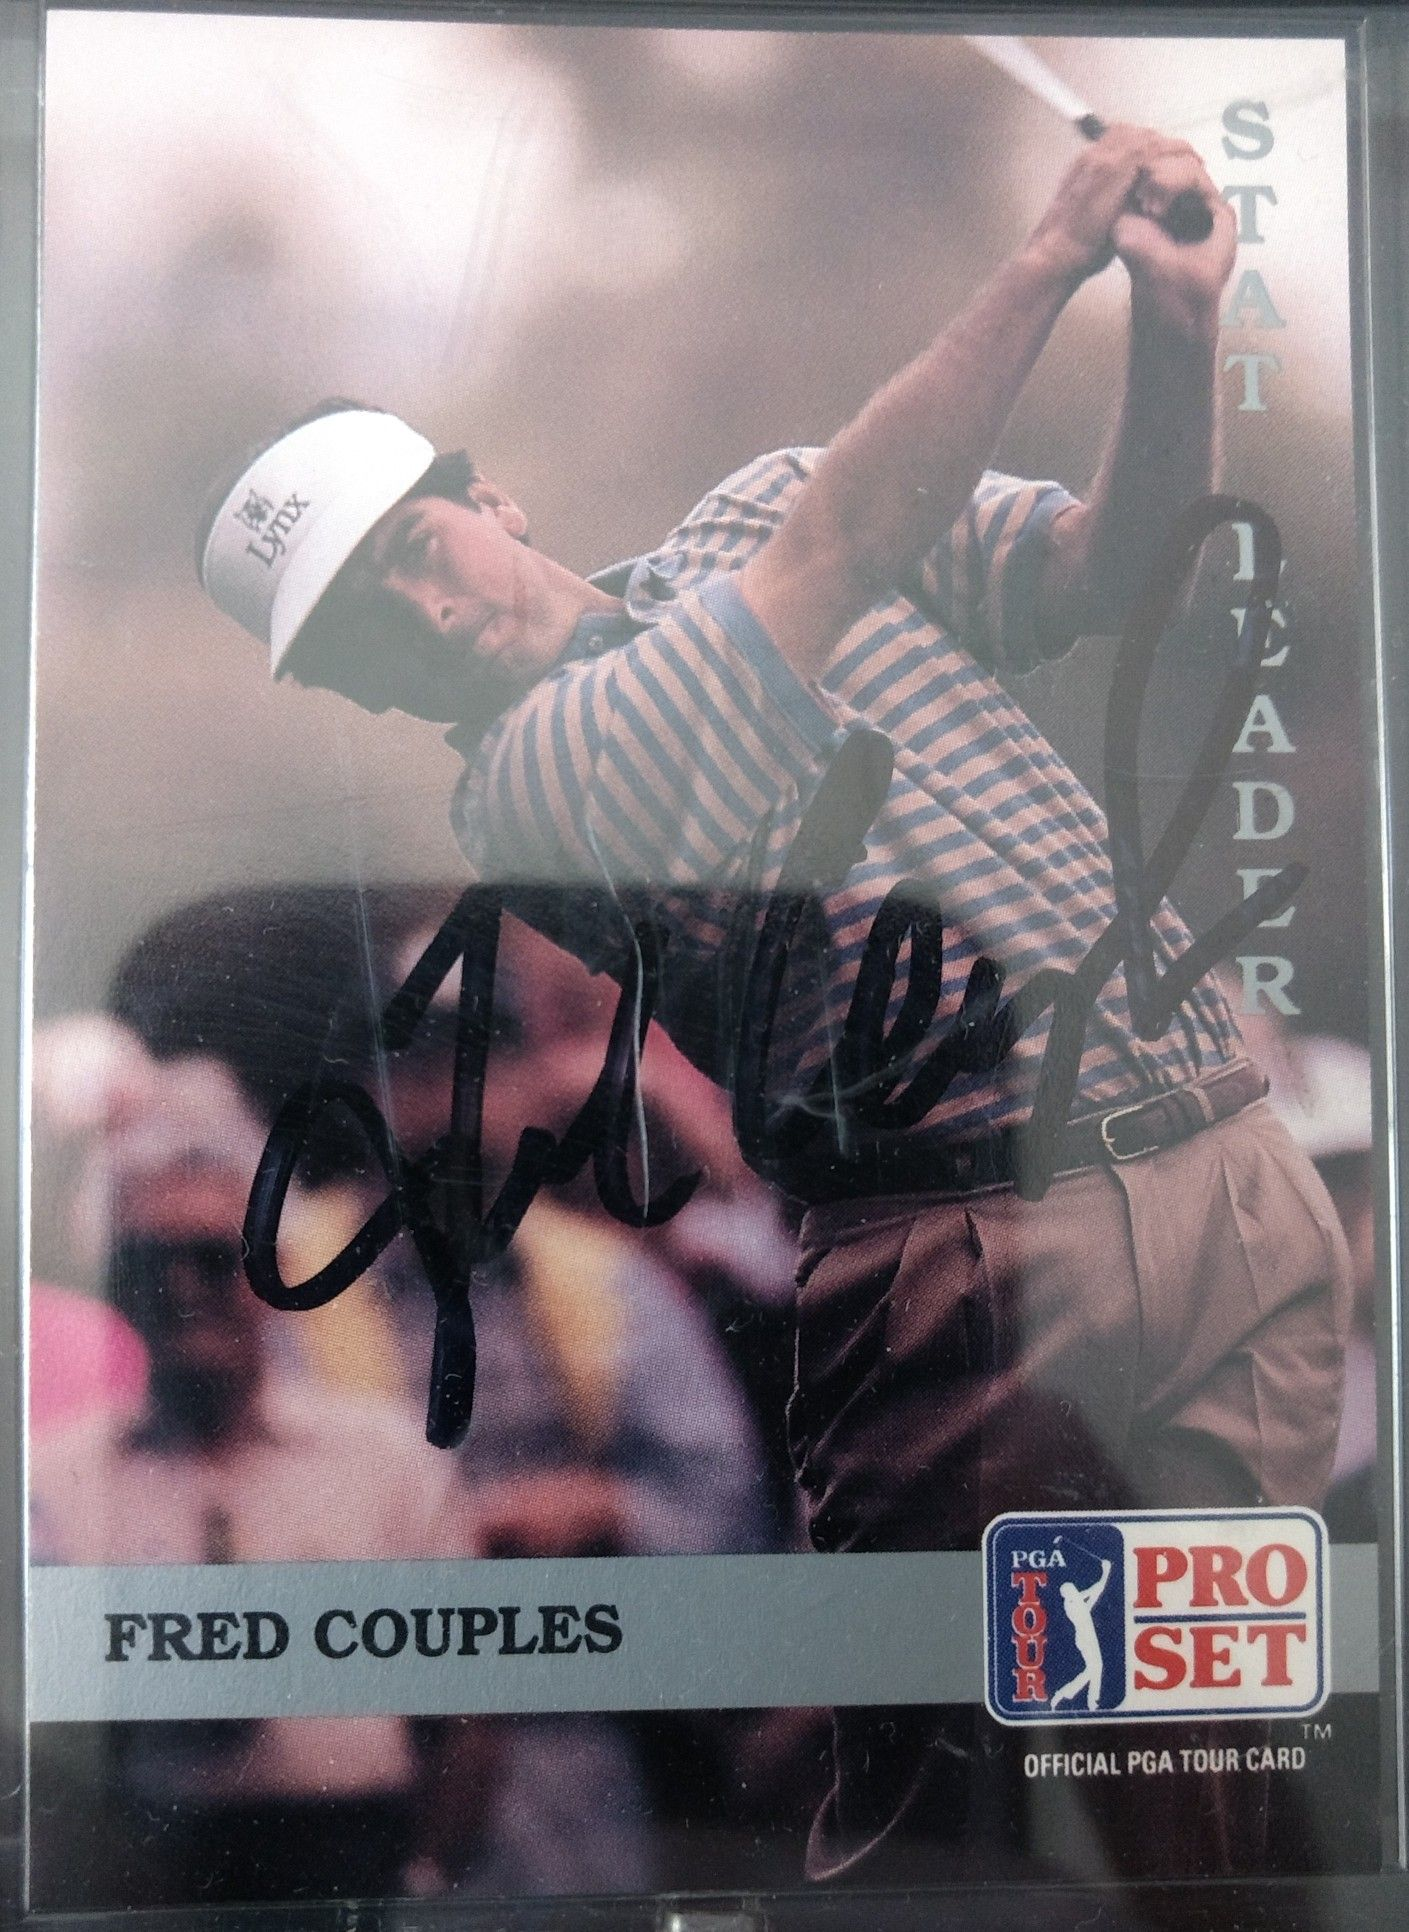 Professional Pga Golfer Fred Couples Autographed Card Fred